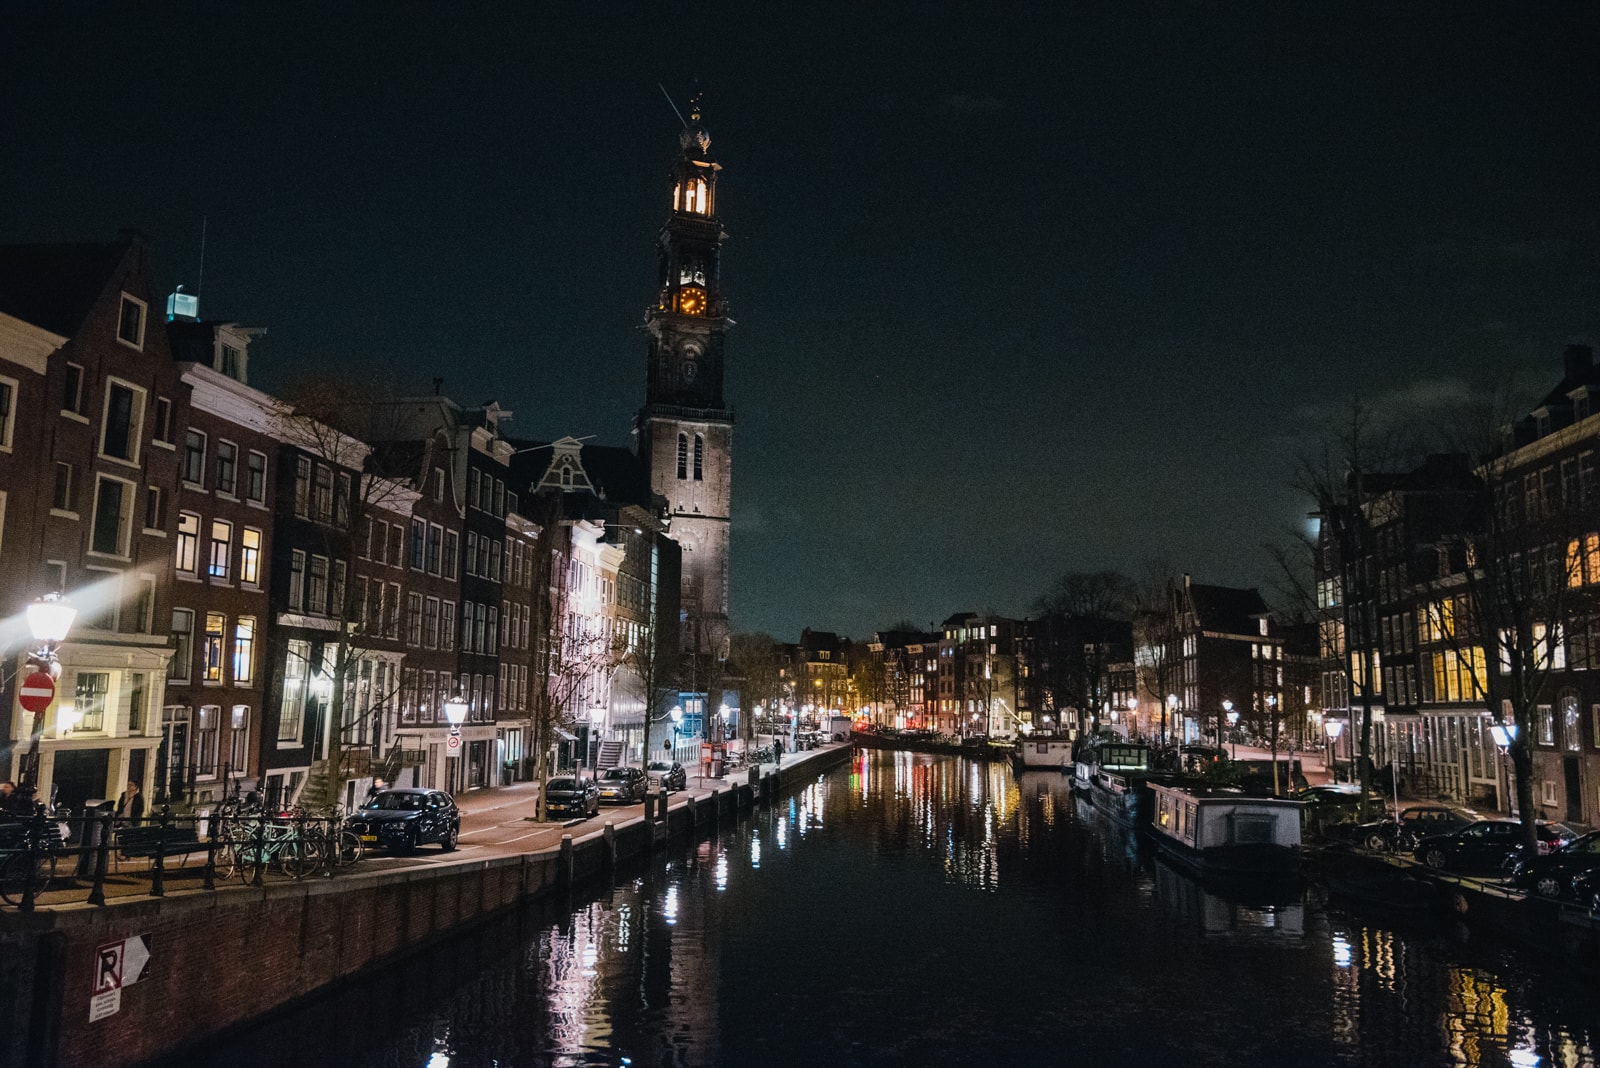 The Top 7 Things To Do and See in Amsterdams Jordaan